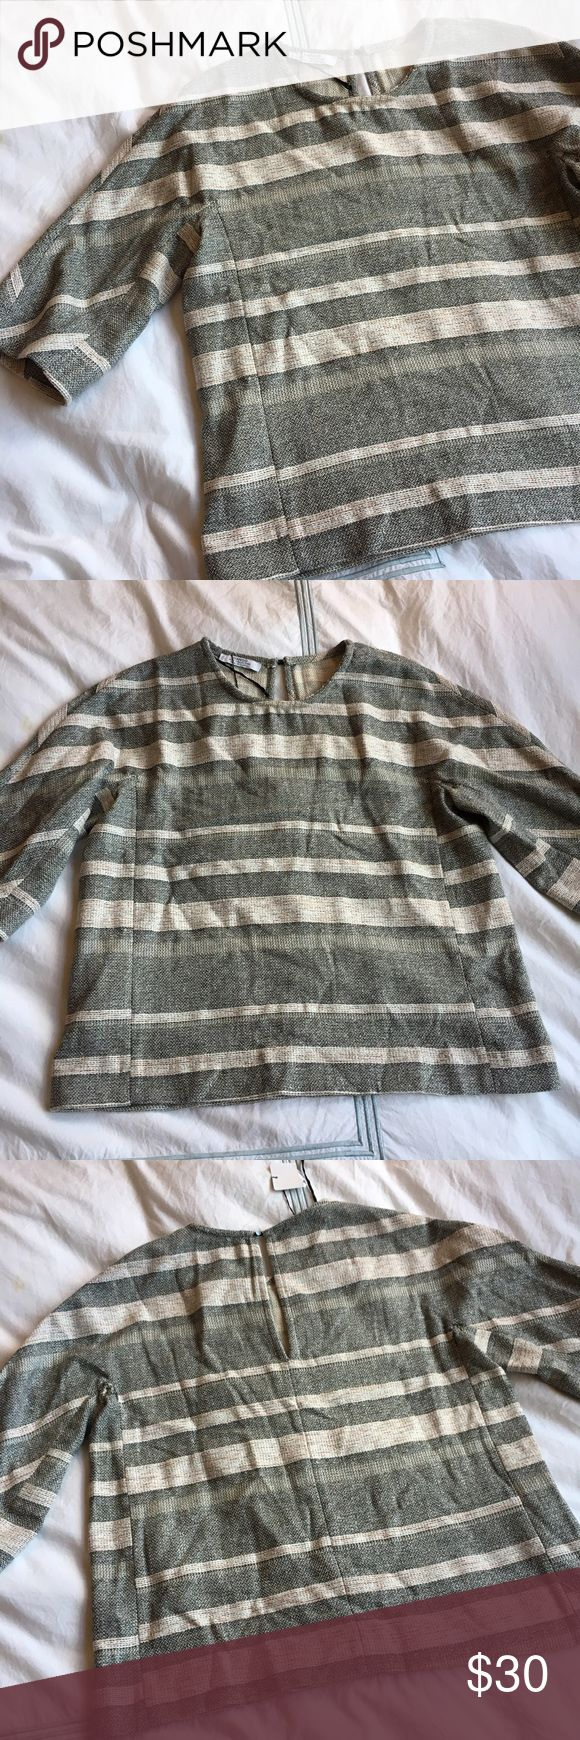 Mango suit collection striped jacquard blouse Beautiful metallic stitching in a great silhouette! NWT.  50% cotton, 29% polyester, 11% wool, 9% viscose, 1% metallic. 24 inches long. Mango Tops Blouses